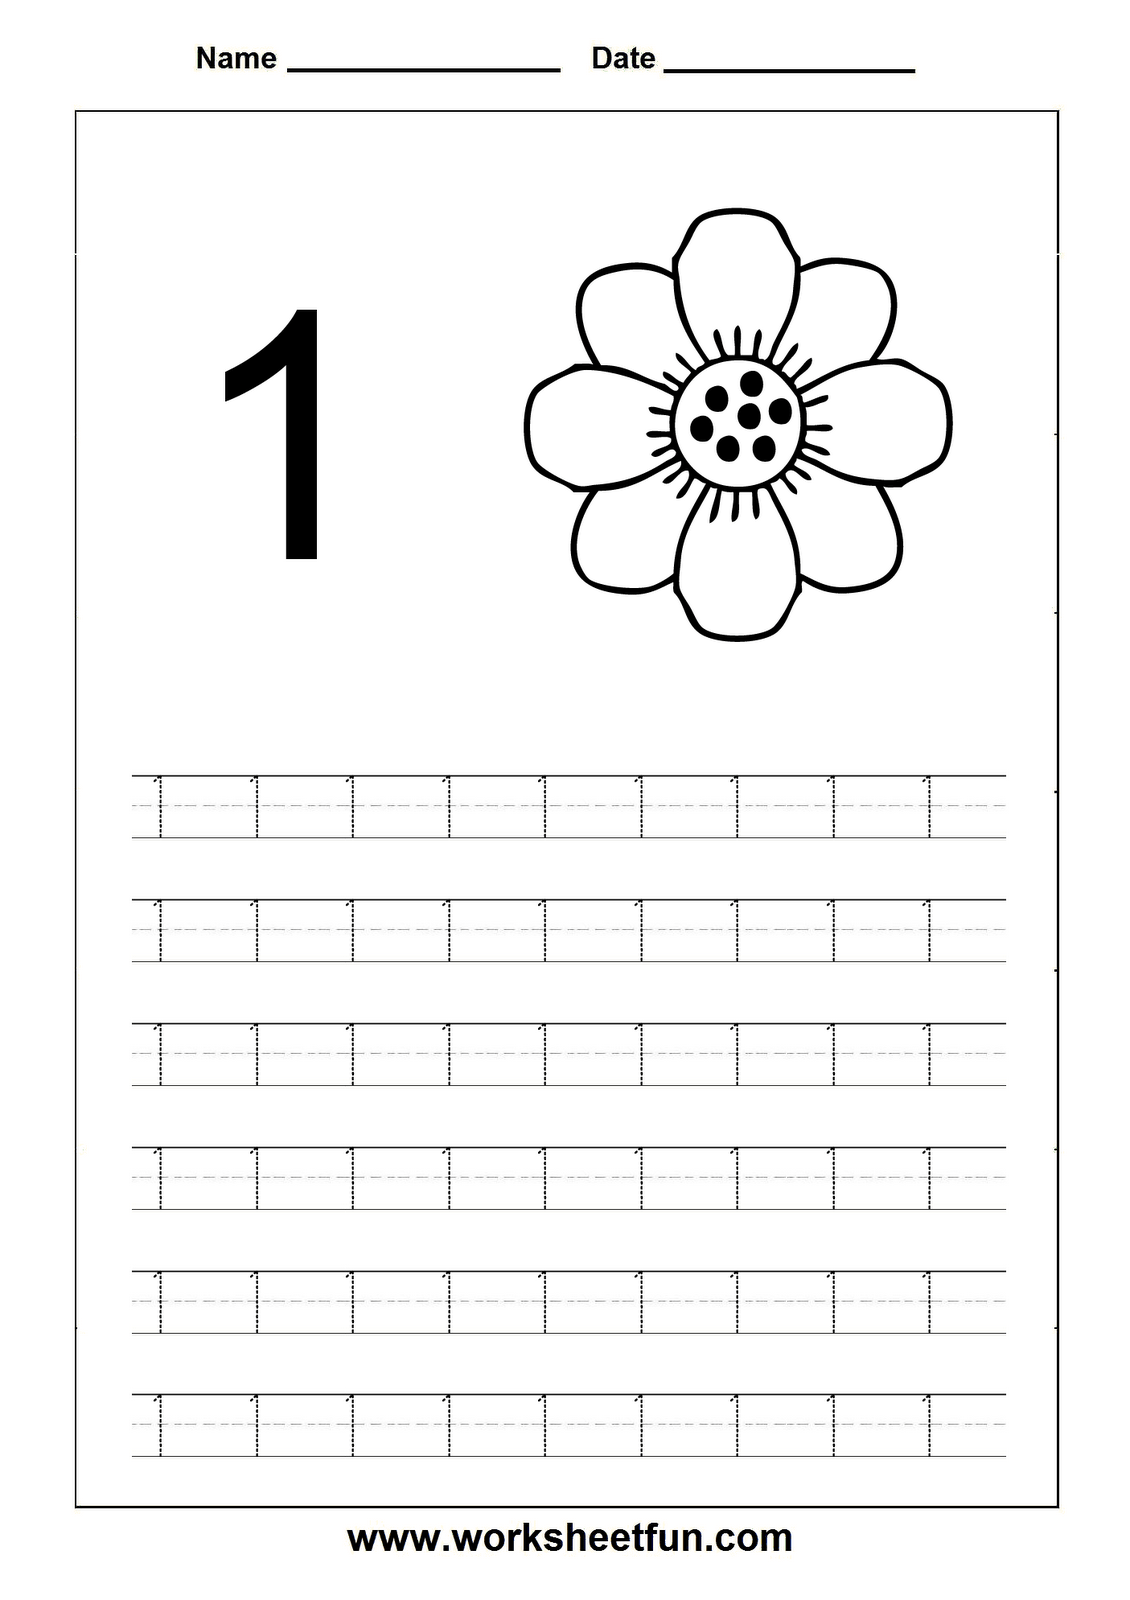 Preschool Number Tracing Worksheets 1 20 Free Worksheets Library